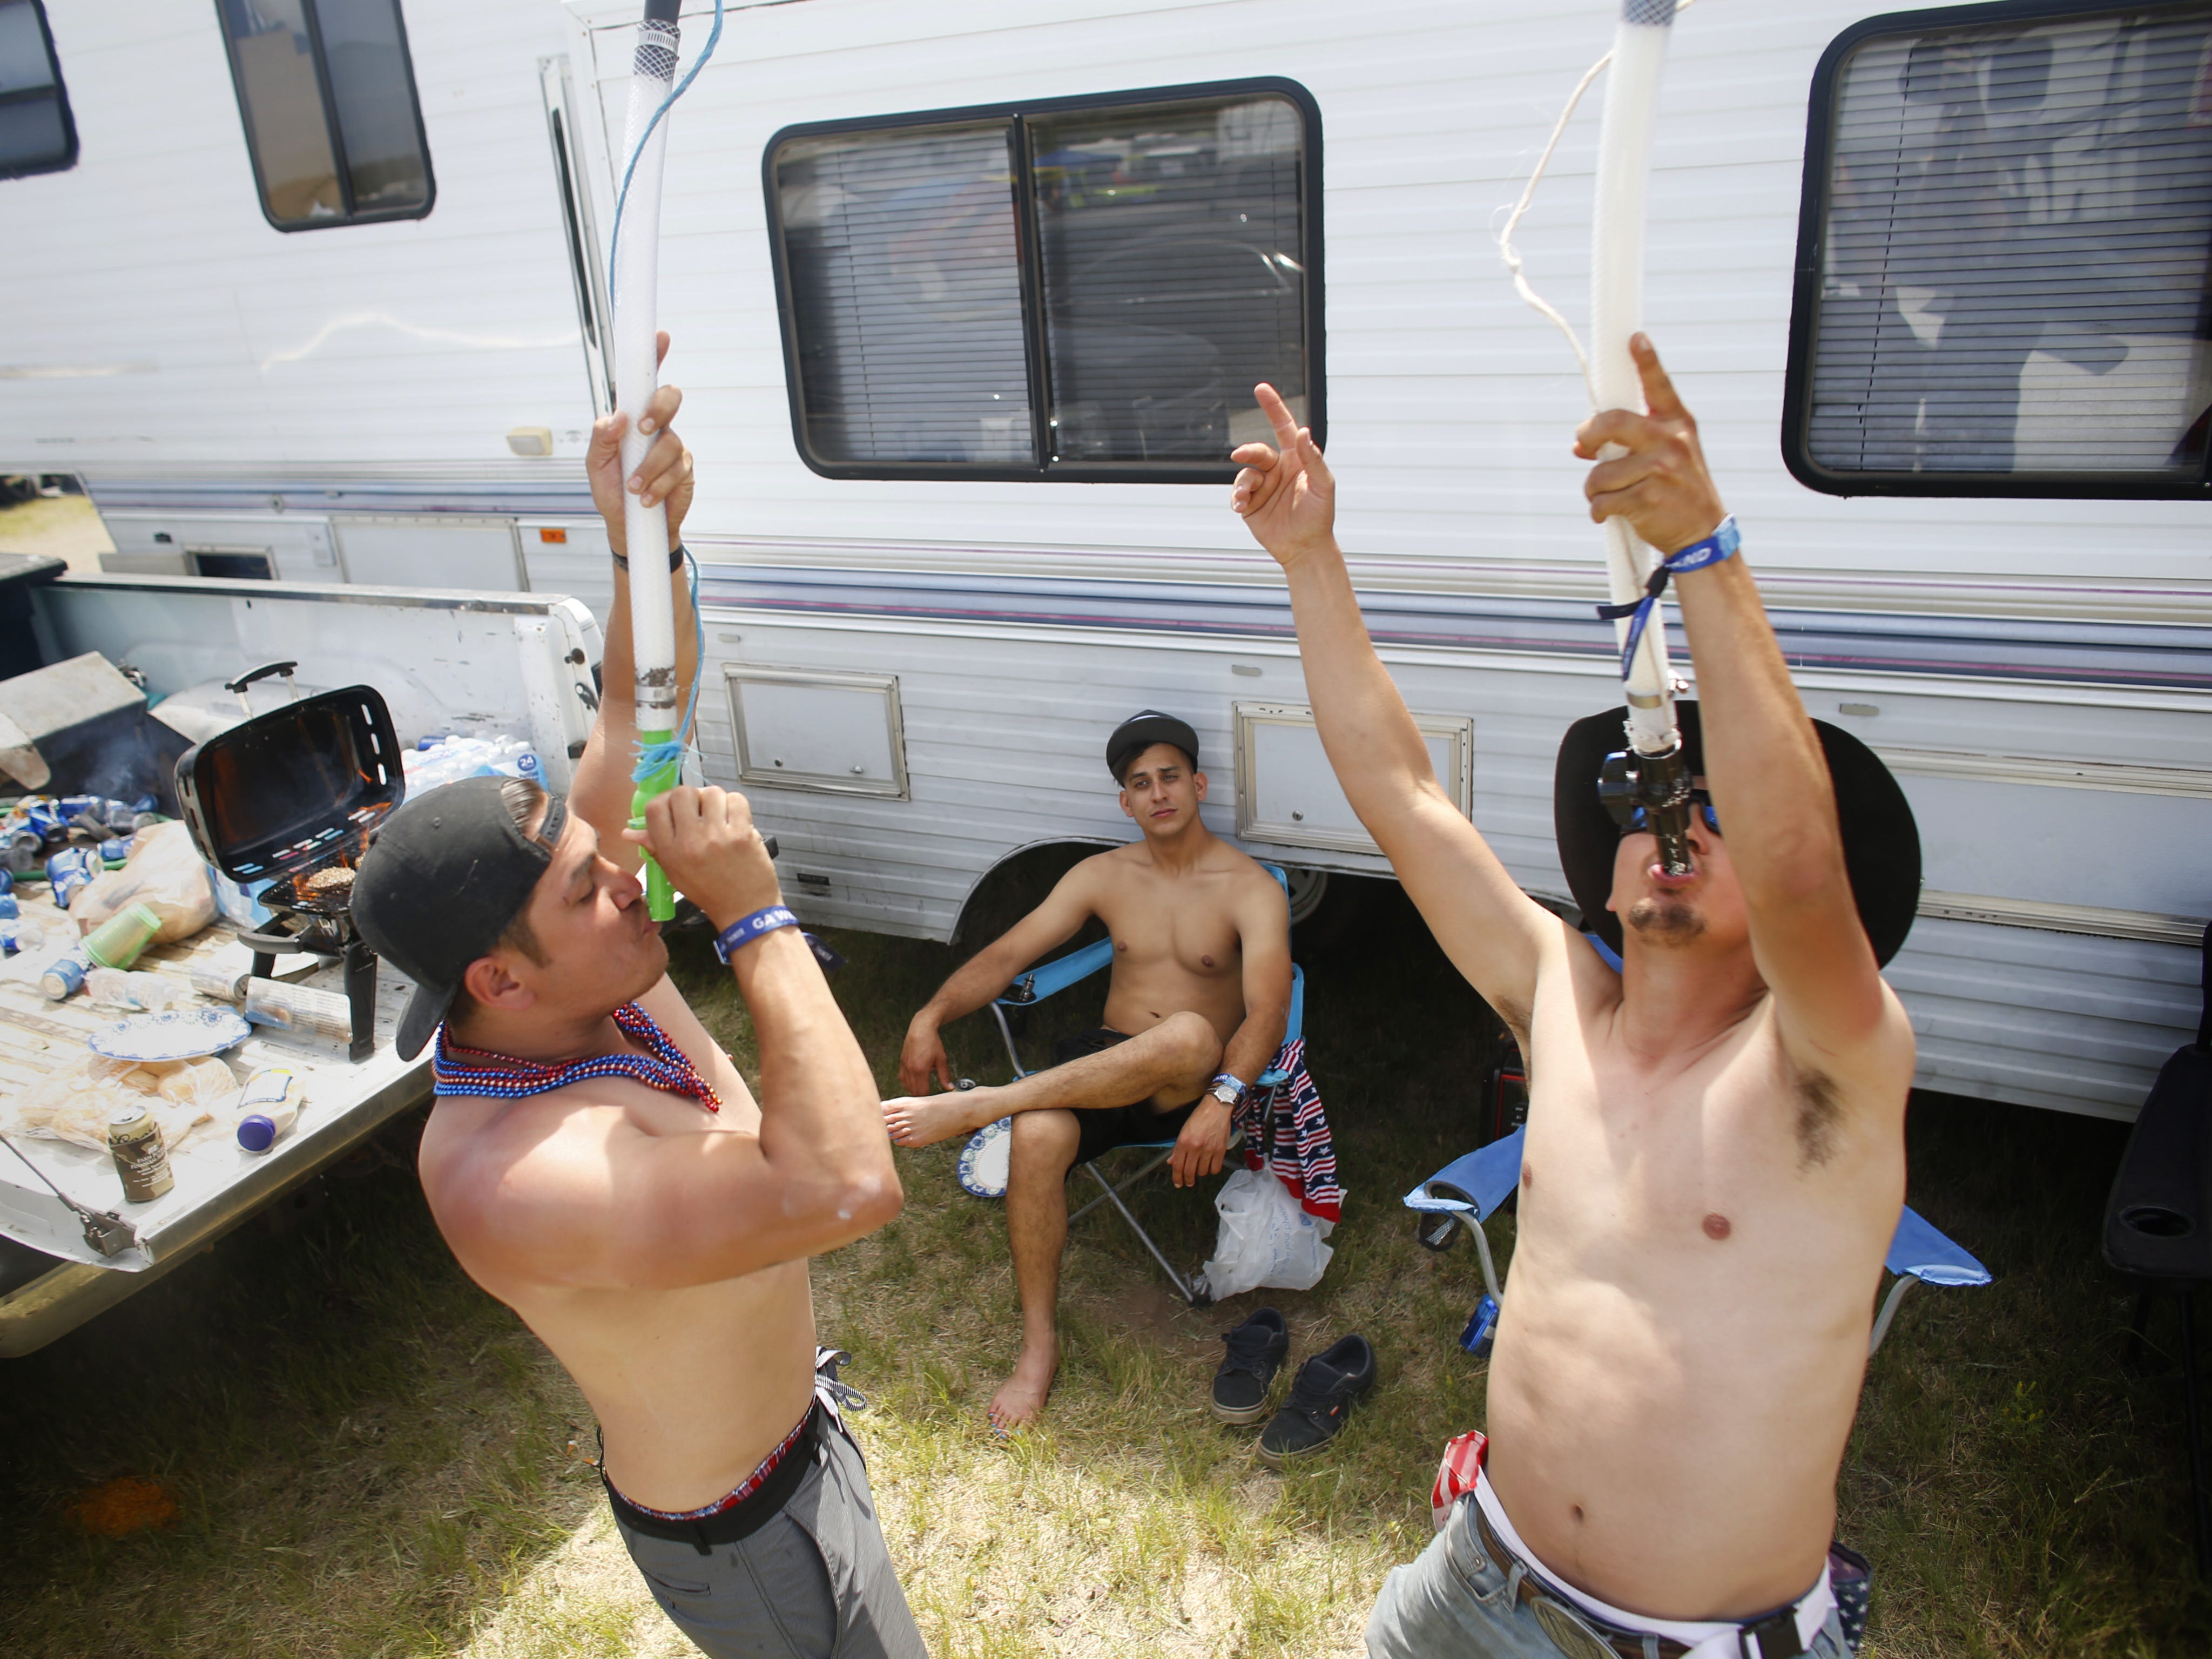 Max Pena (right) and his friend Brian Schurz (left) drink Bud Light from their beer bongs as Kenny Ramos watches during Country Thunder in Florence, Ariz. on Sunday, April 14, 2019.